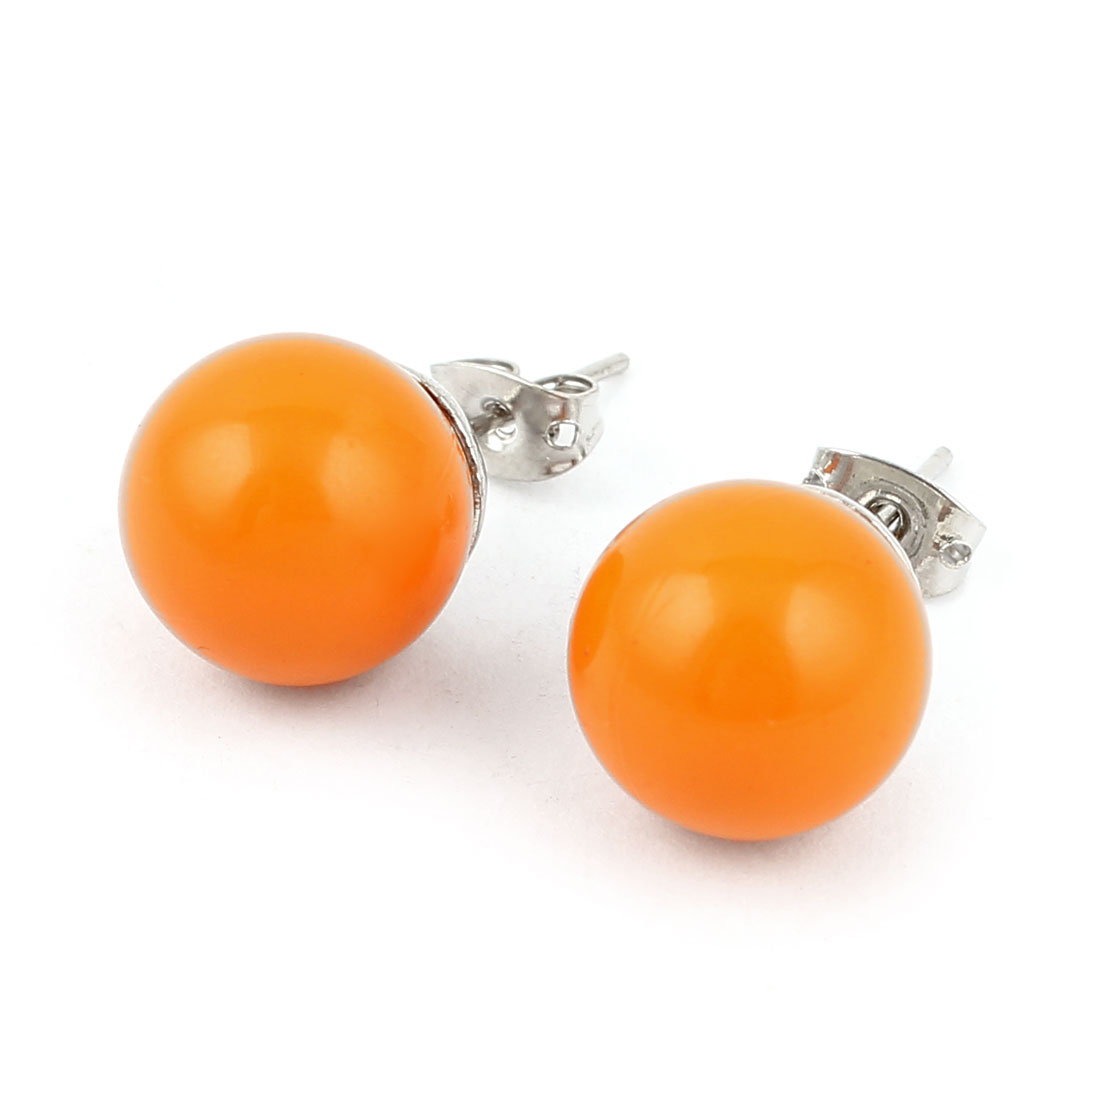 Lady Orange Plastic Candy Ball Round Bead Decor Pierced Ear Stud Pin Ear Nail Earrings Earbobs Pair